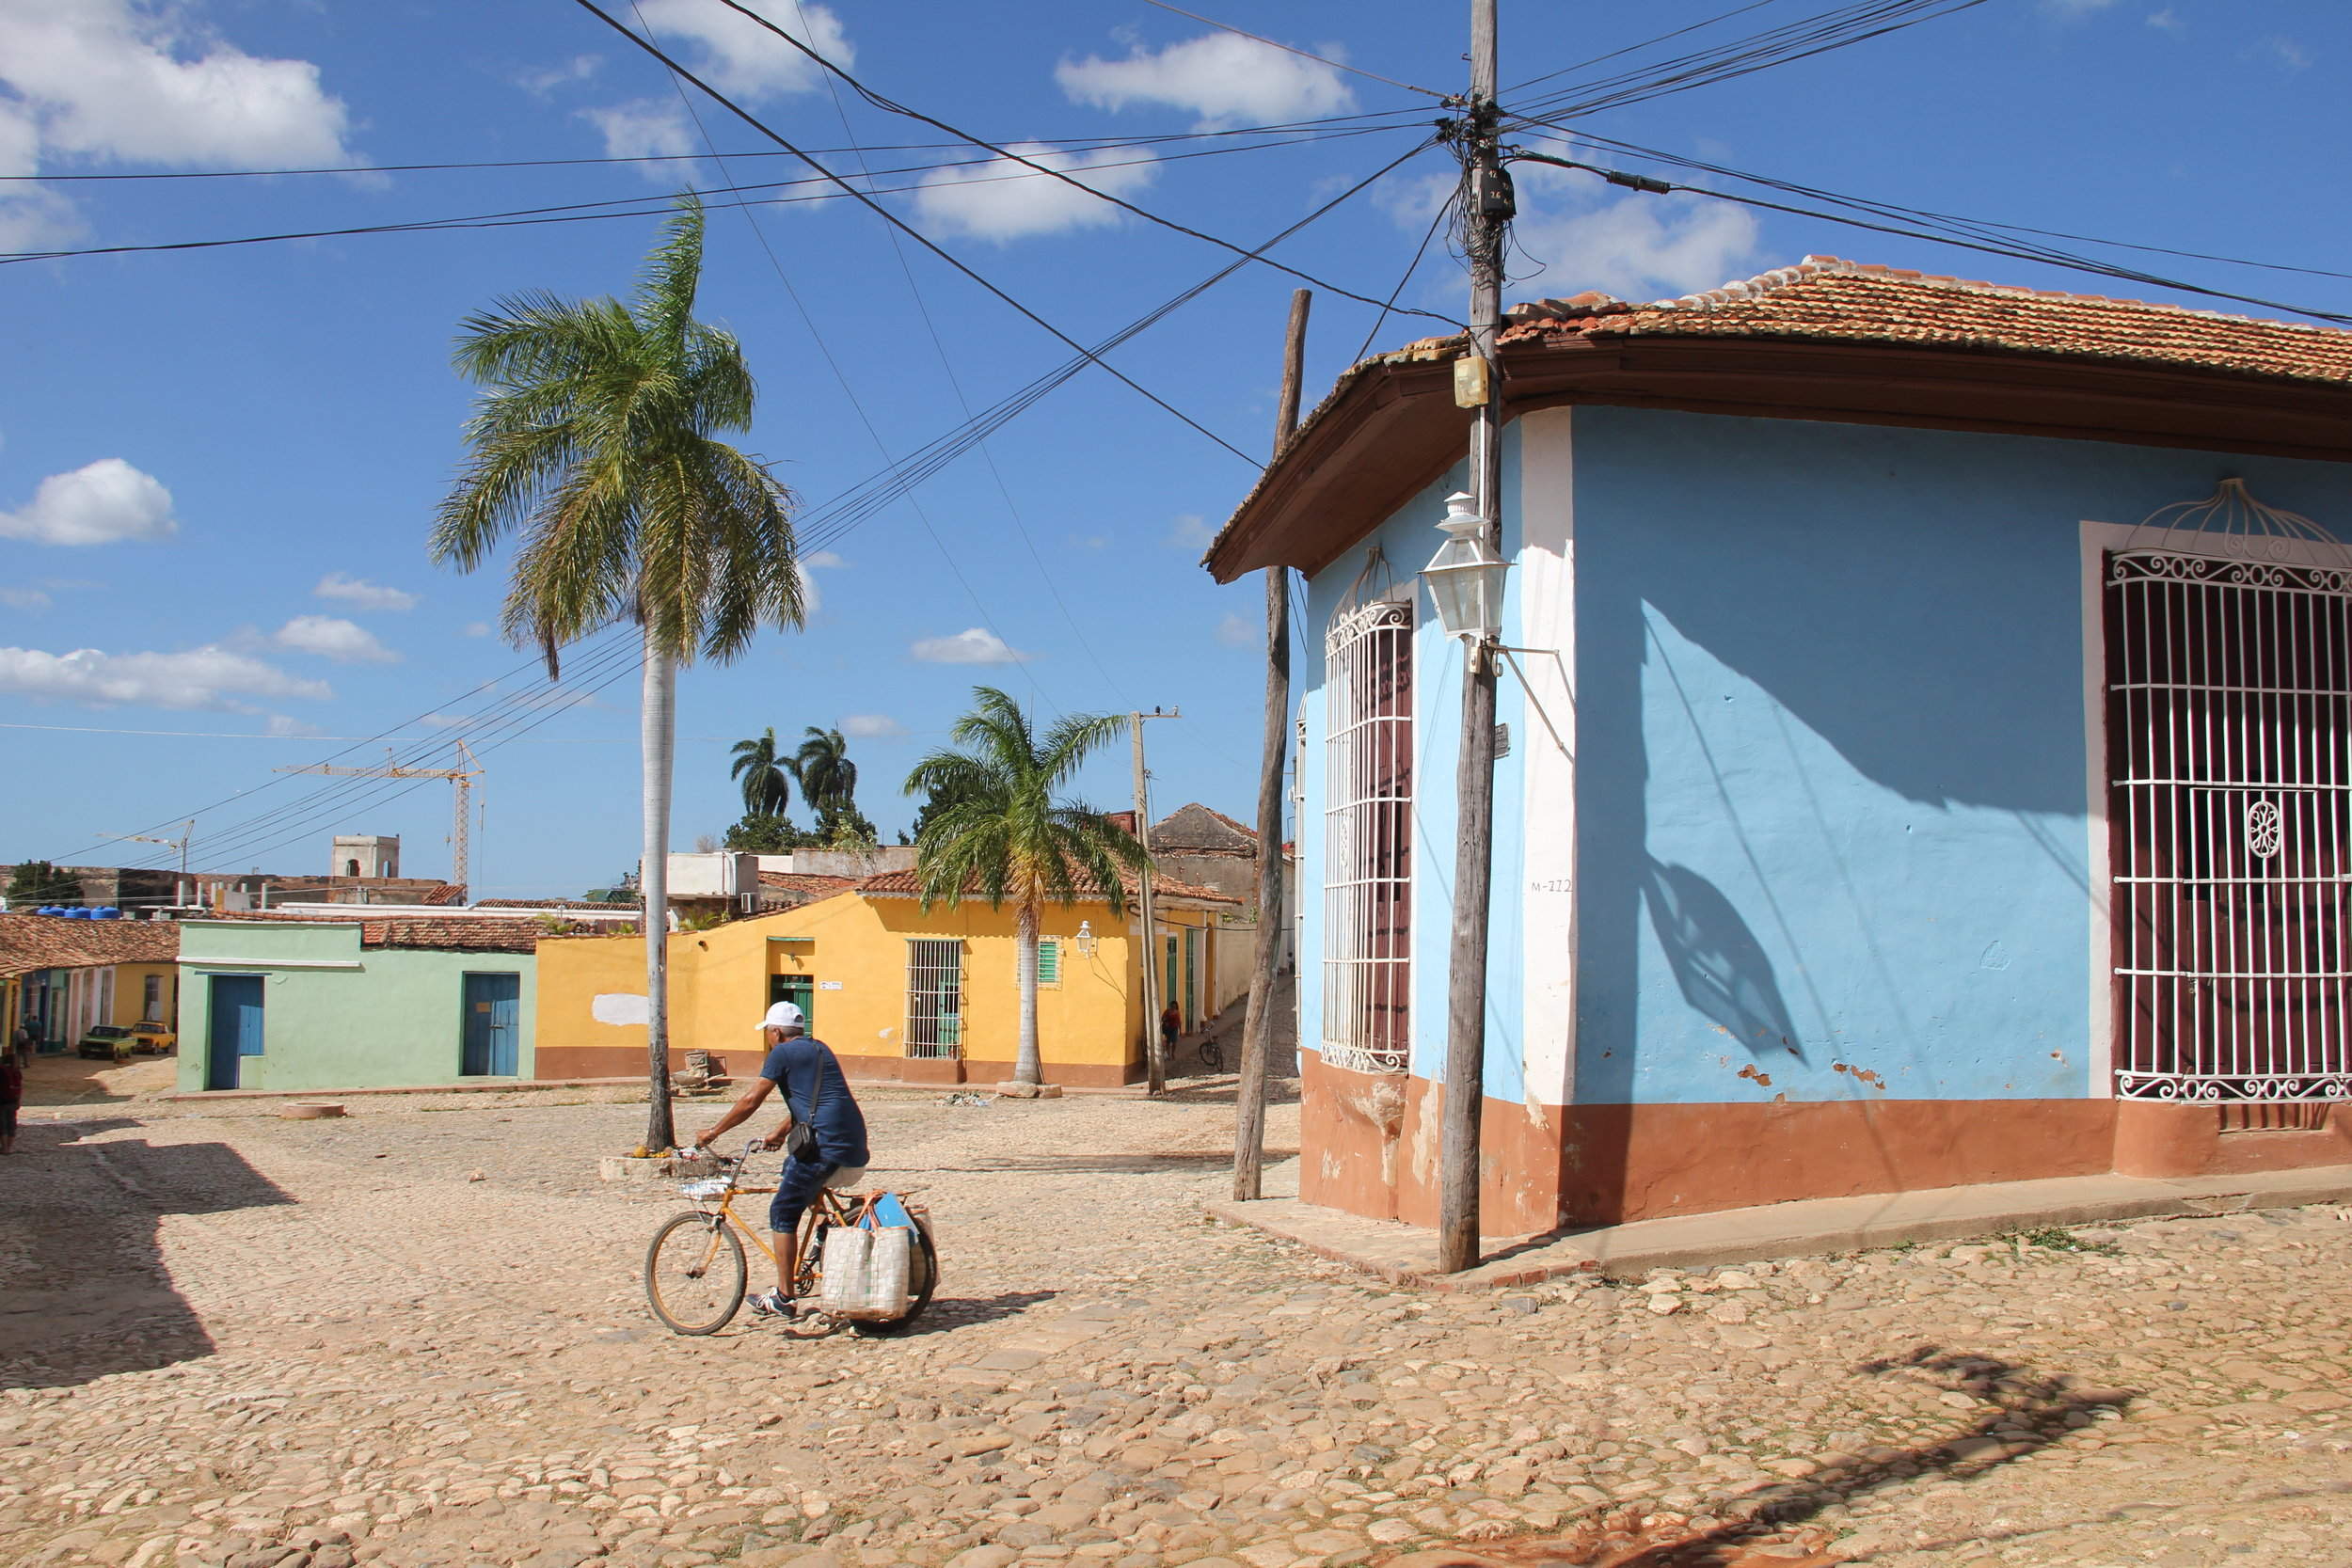 Mini eXCURSIONS - Interested in exploring Cuba outside of Havana? Want to add on a 4-night excursion to your Havana-focused program? Consider these mini excursions to destinations that are not to be missed on the island.